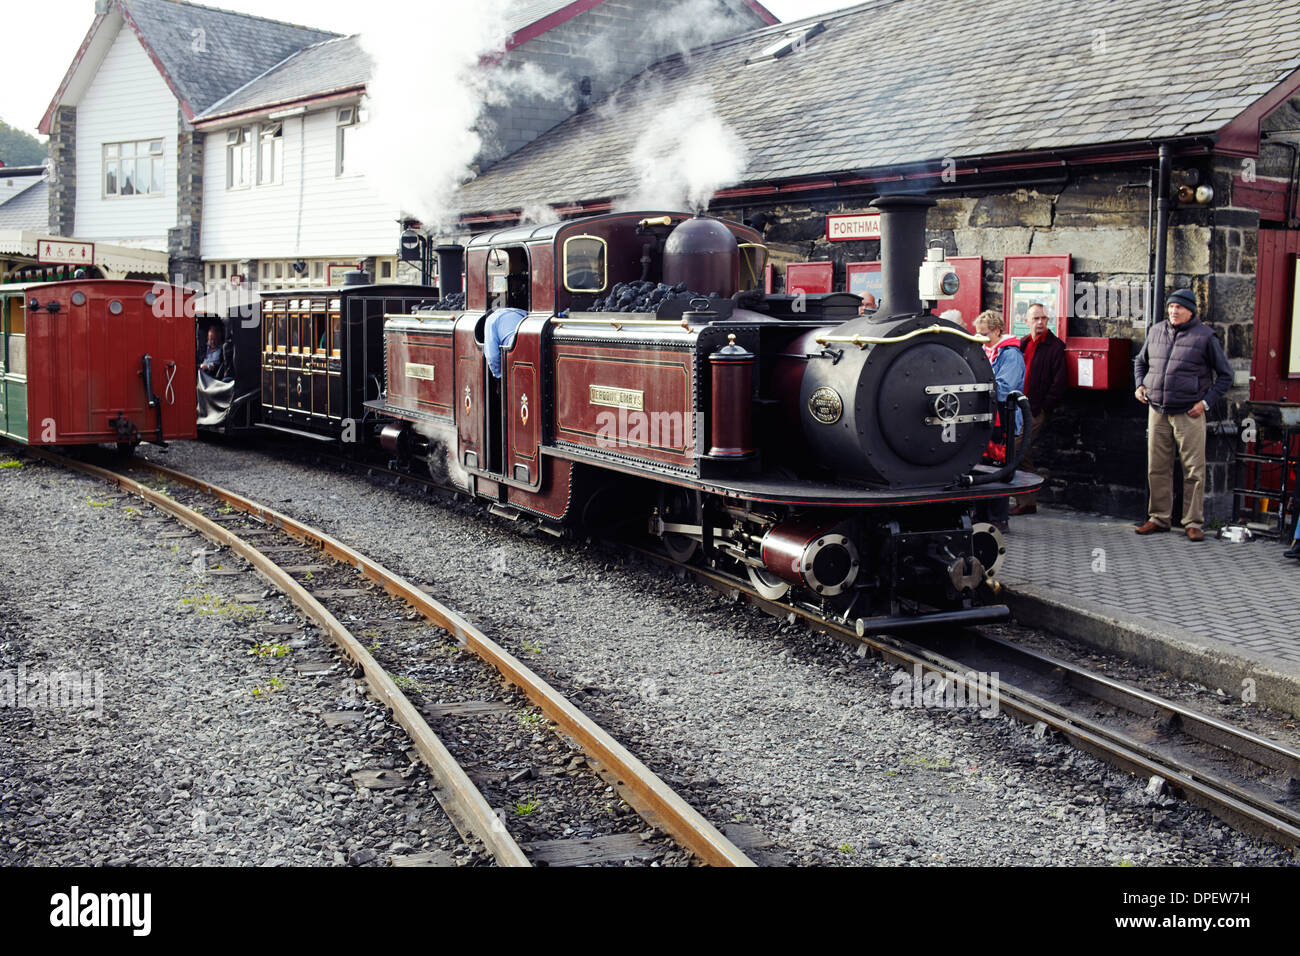 Ffestiniog railway at Portmadog, North Wales - Stock Image